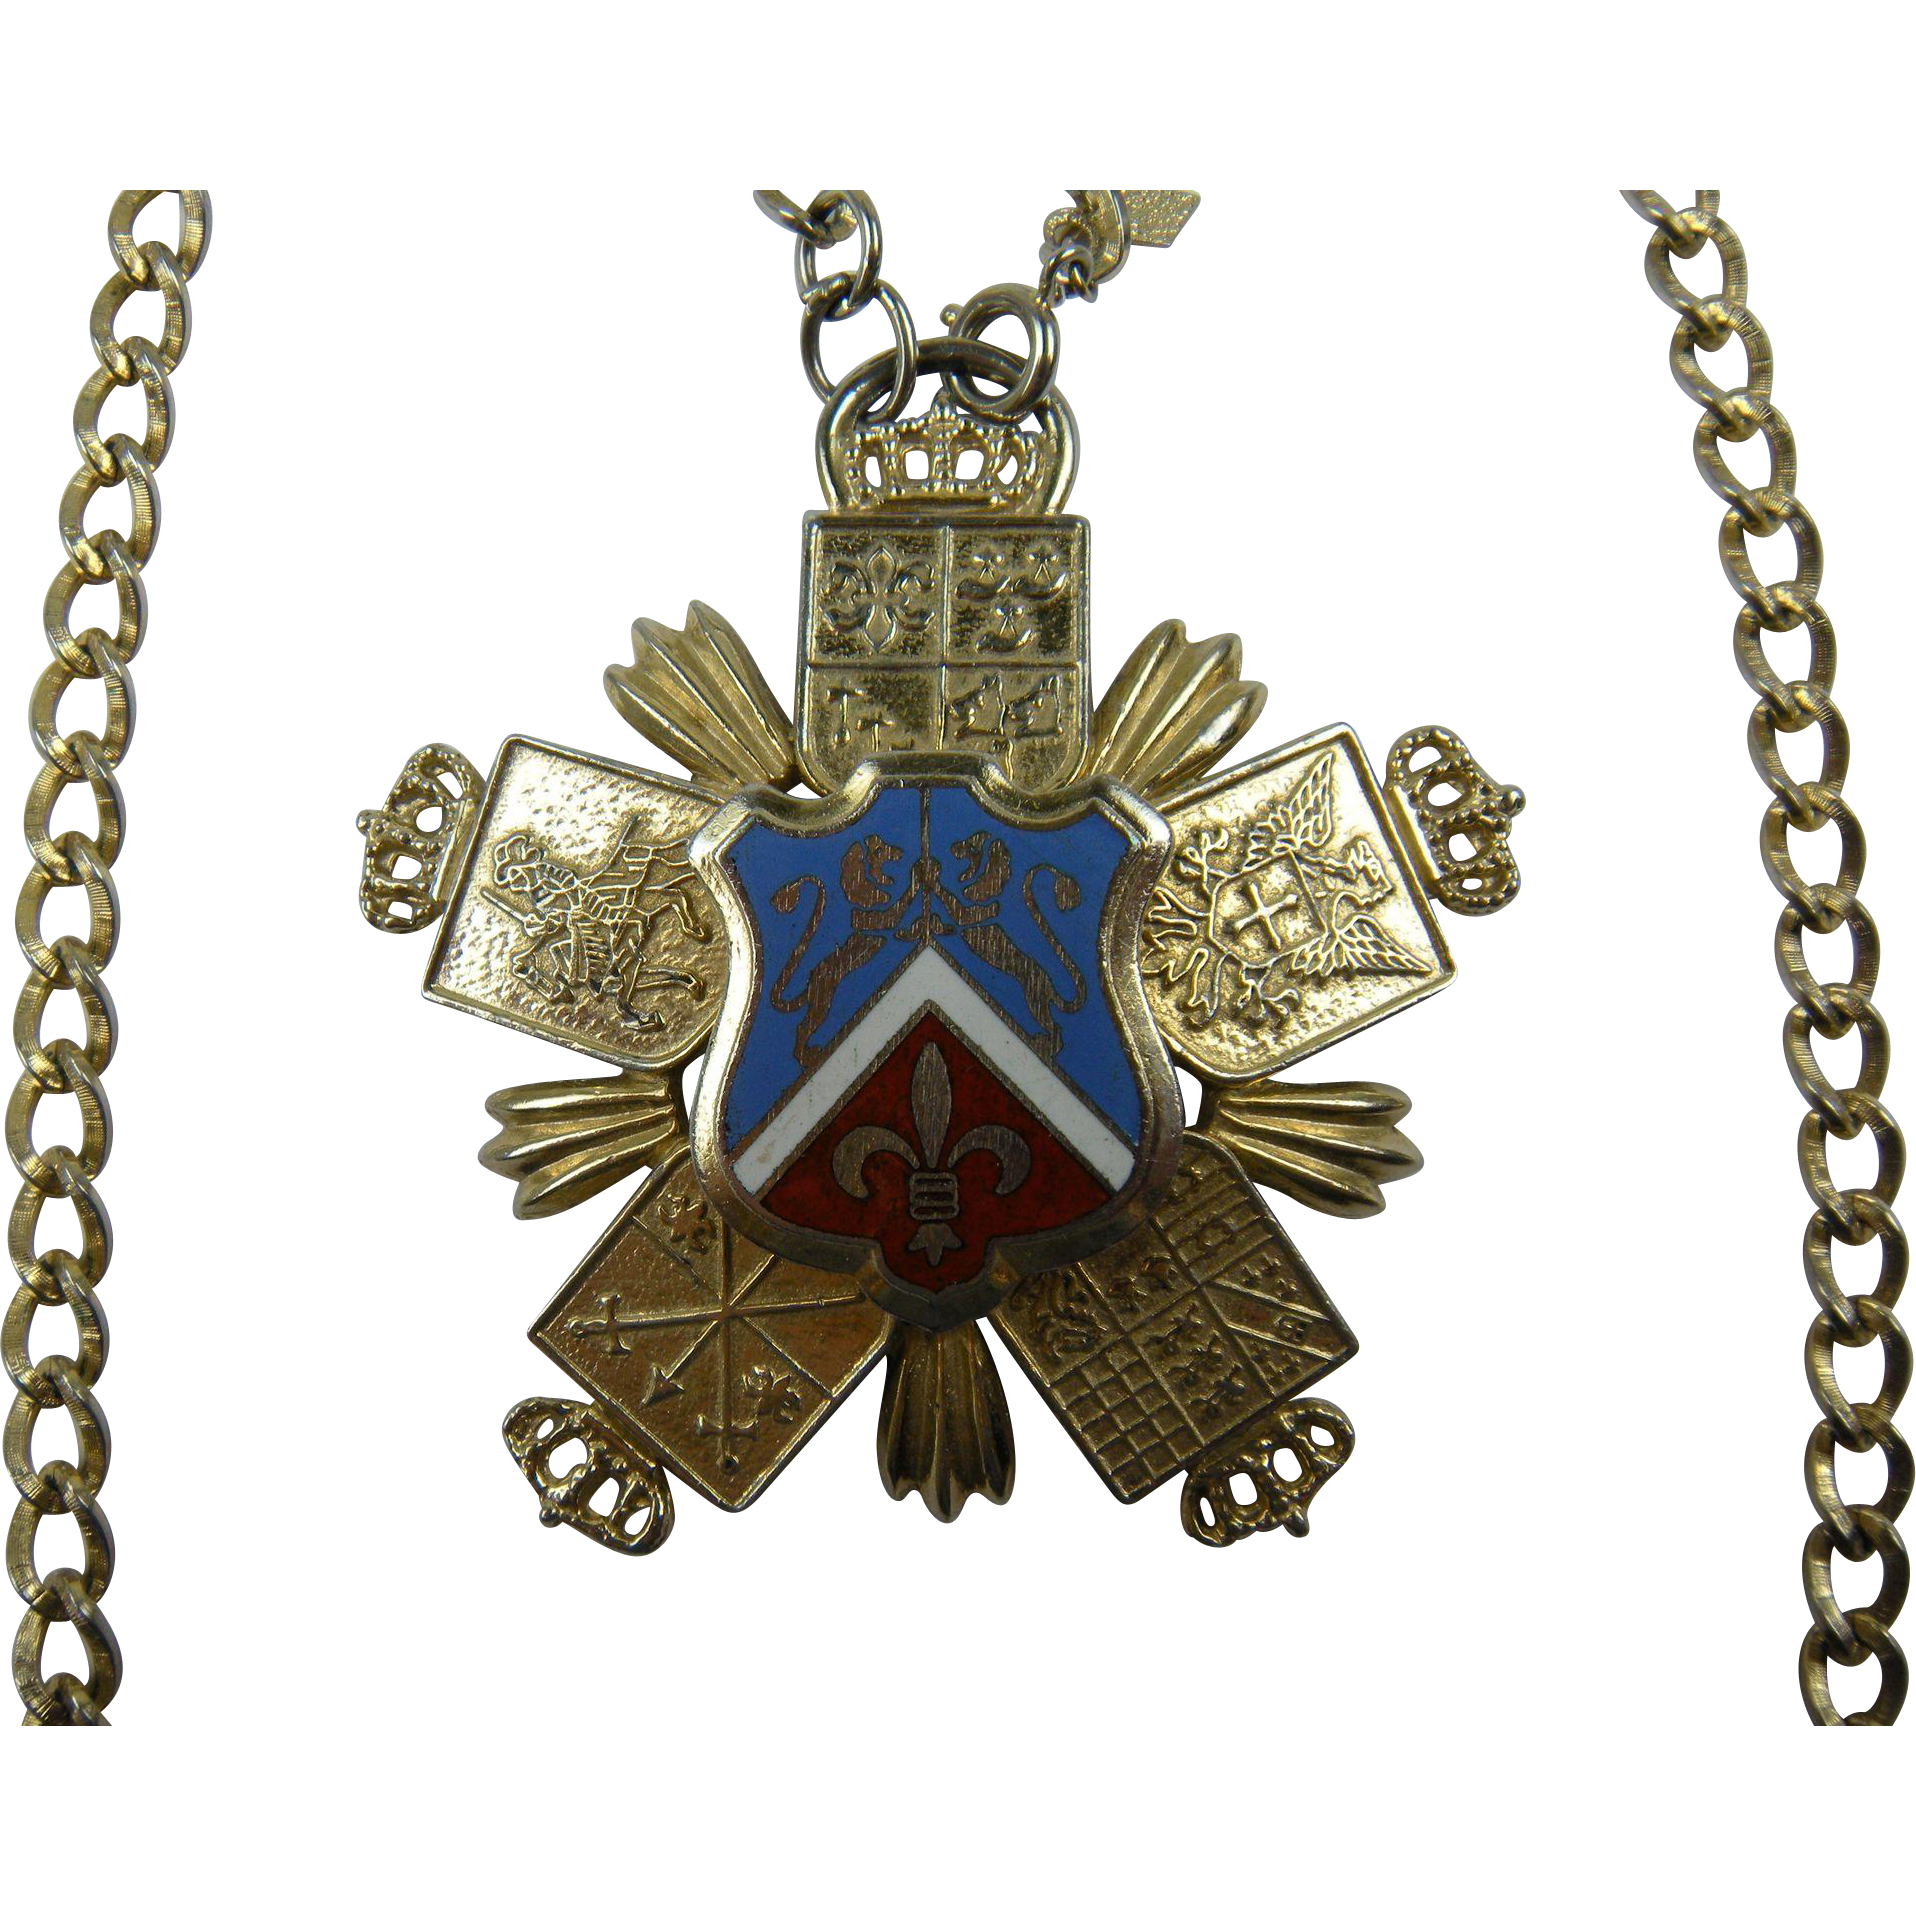 Huge Ornate Heraldic Pendant Necklace